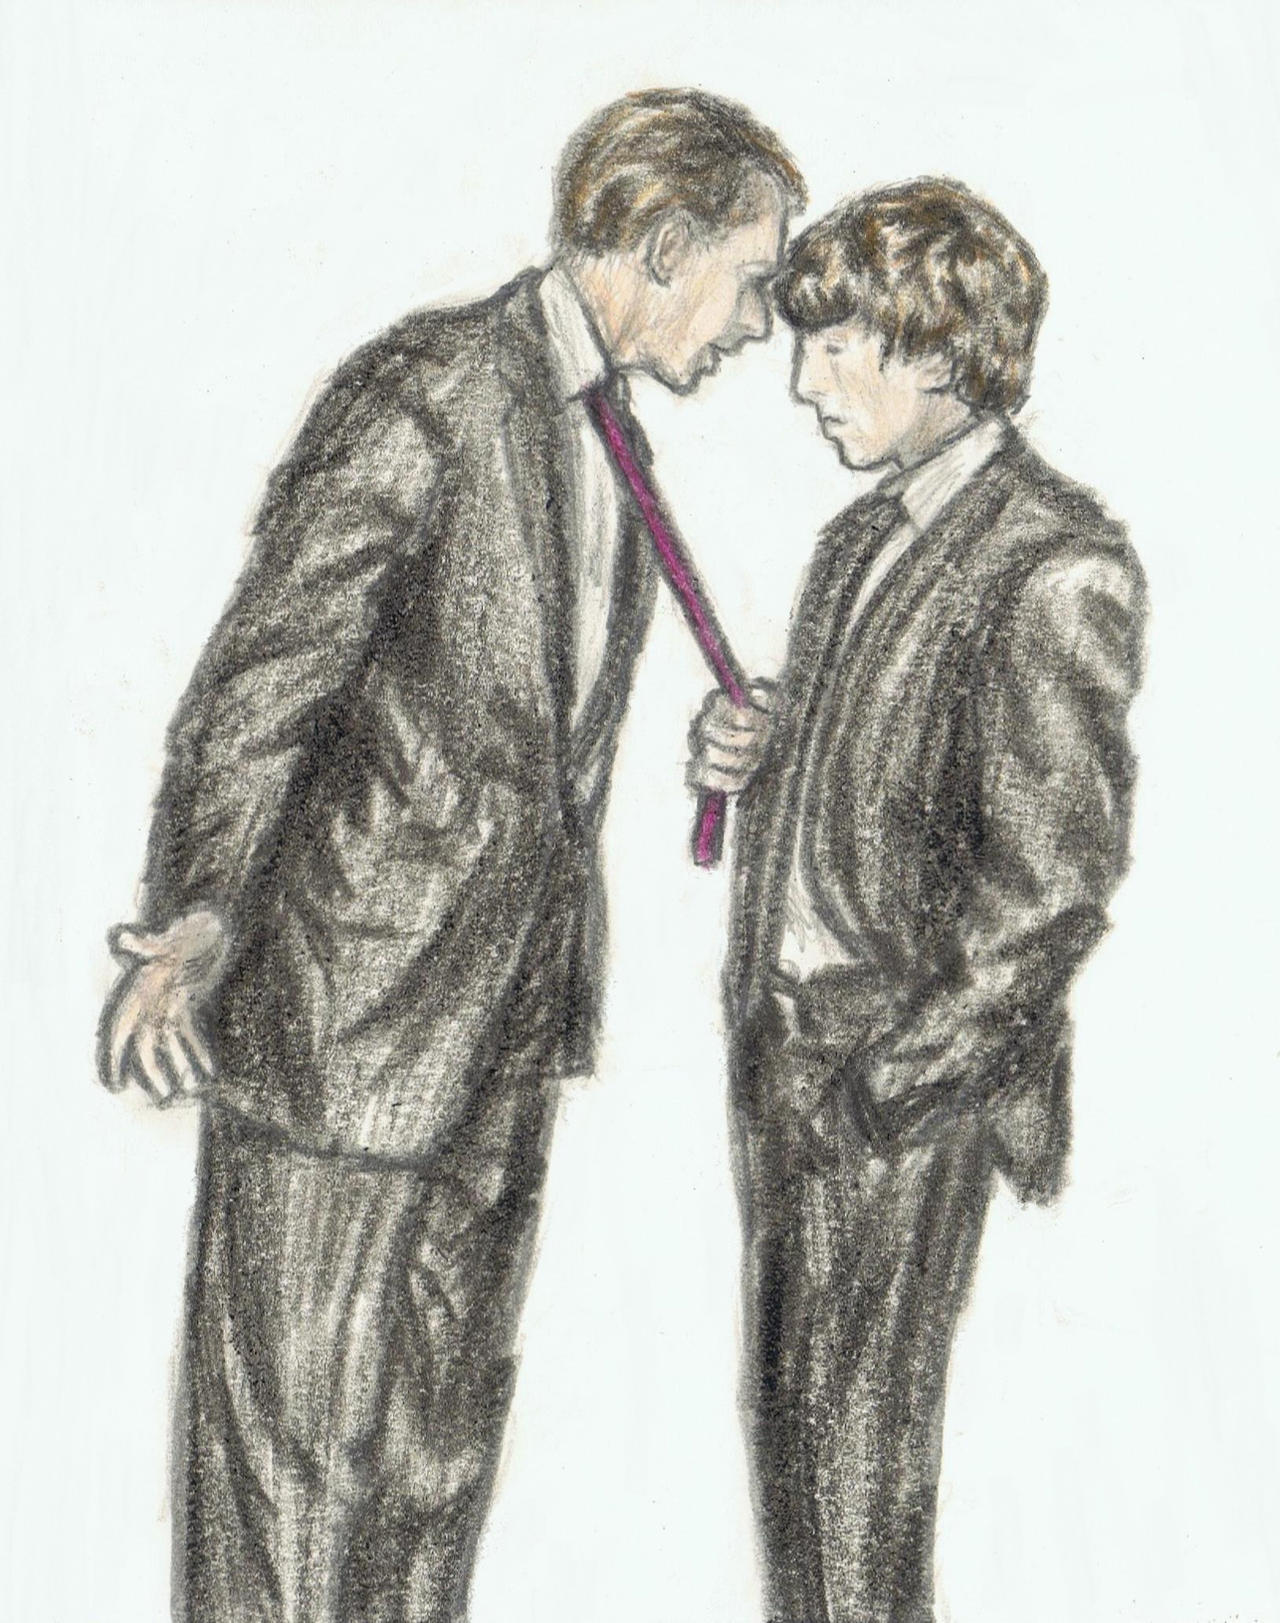 George Harrison examining George Martin's tie by gagambo